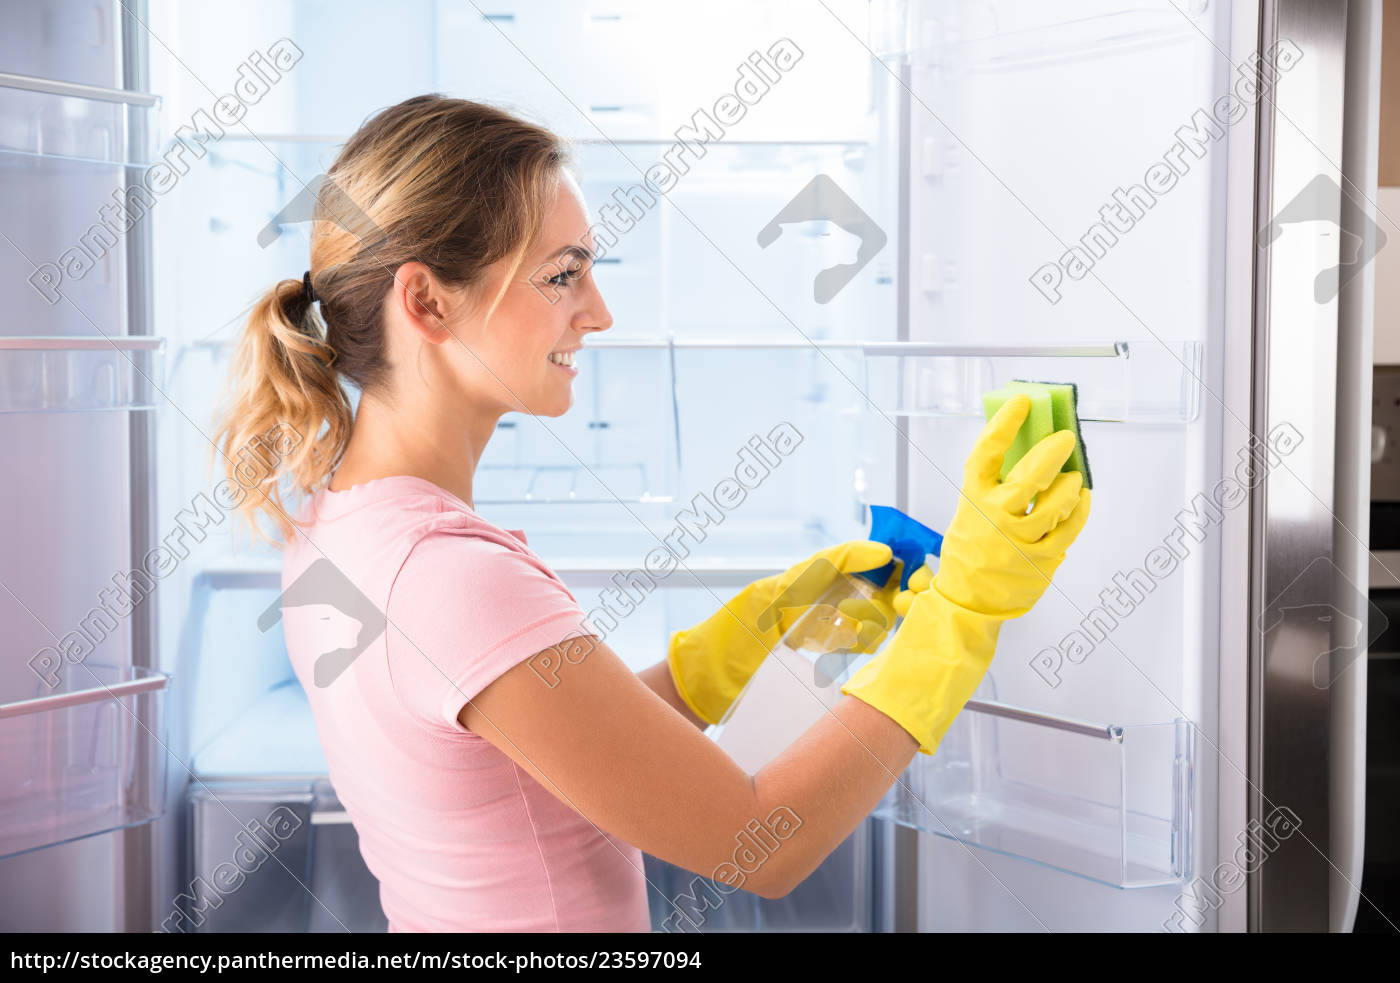 woman, wearing, gloves, cleaning, refrigerator - 23597094